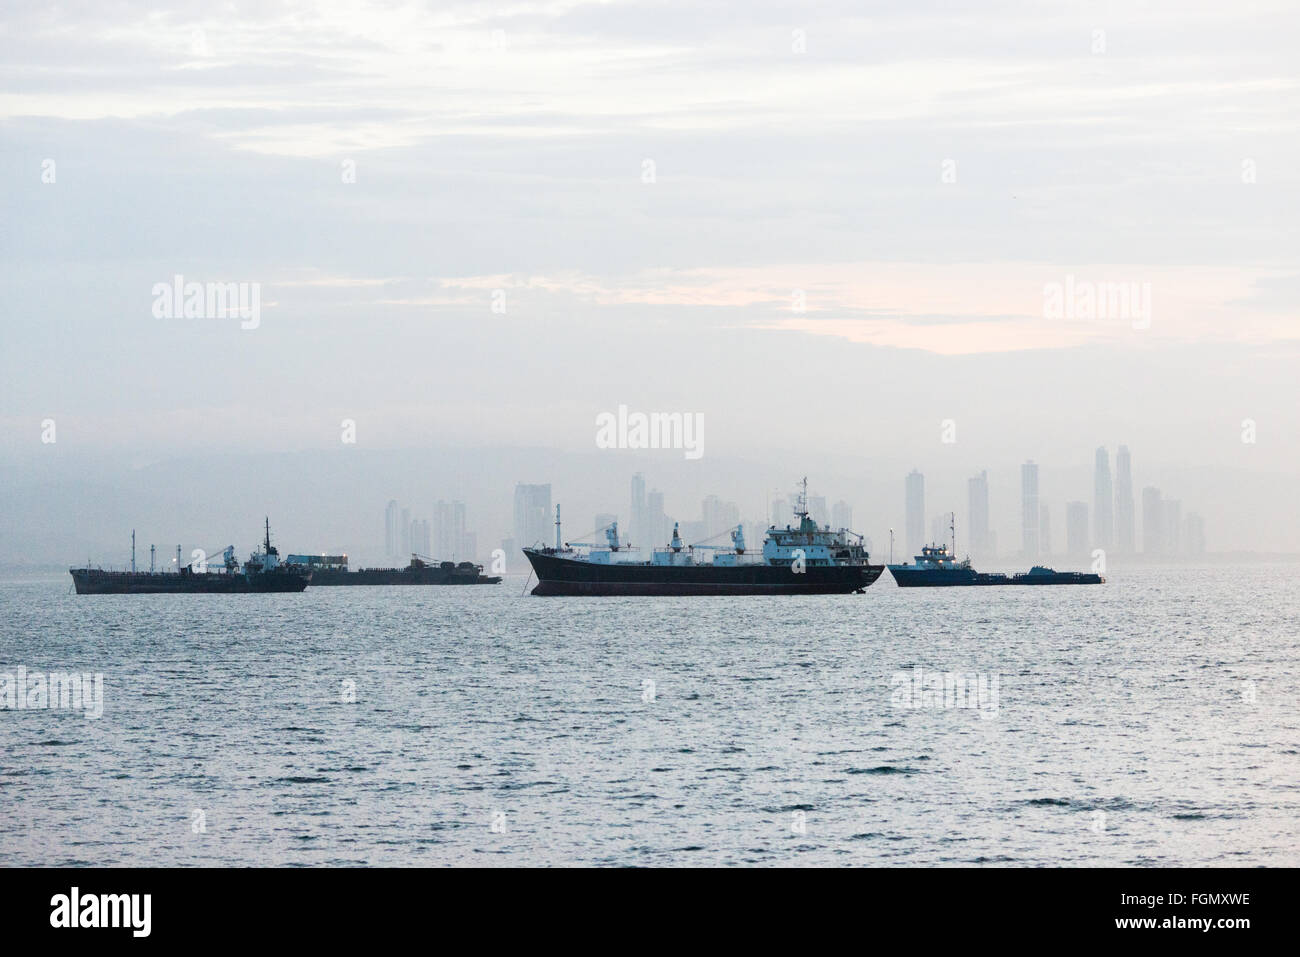 PANAMA CANAL, Panama--Ships at anchor in Panama Bay waiting their scheduled turn to transit the Panama Canal. The - Stock Image